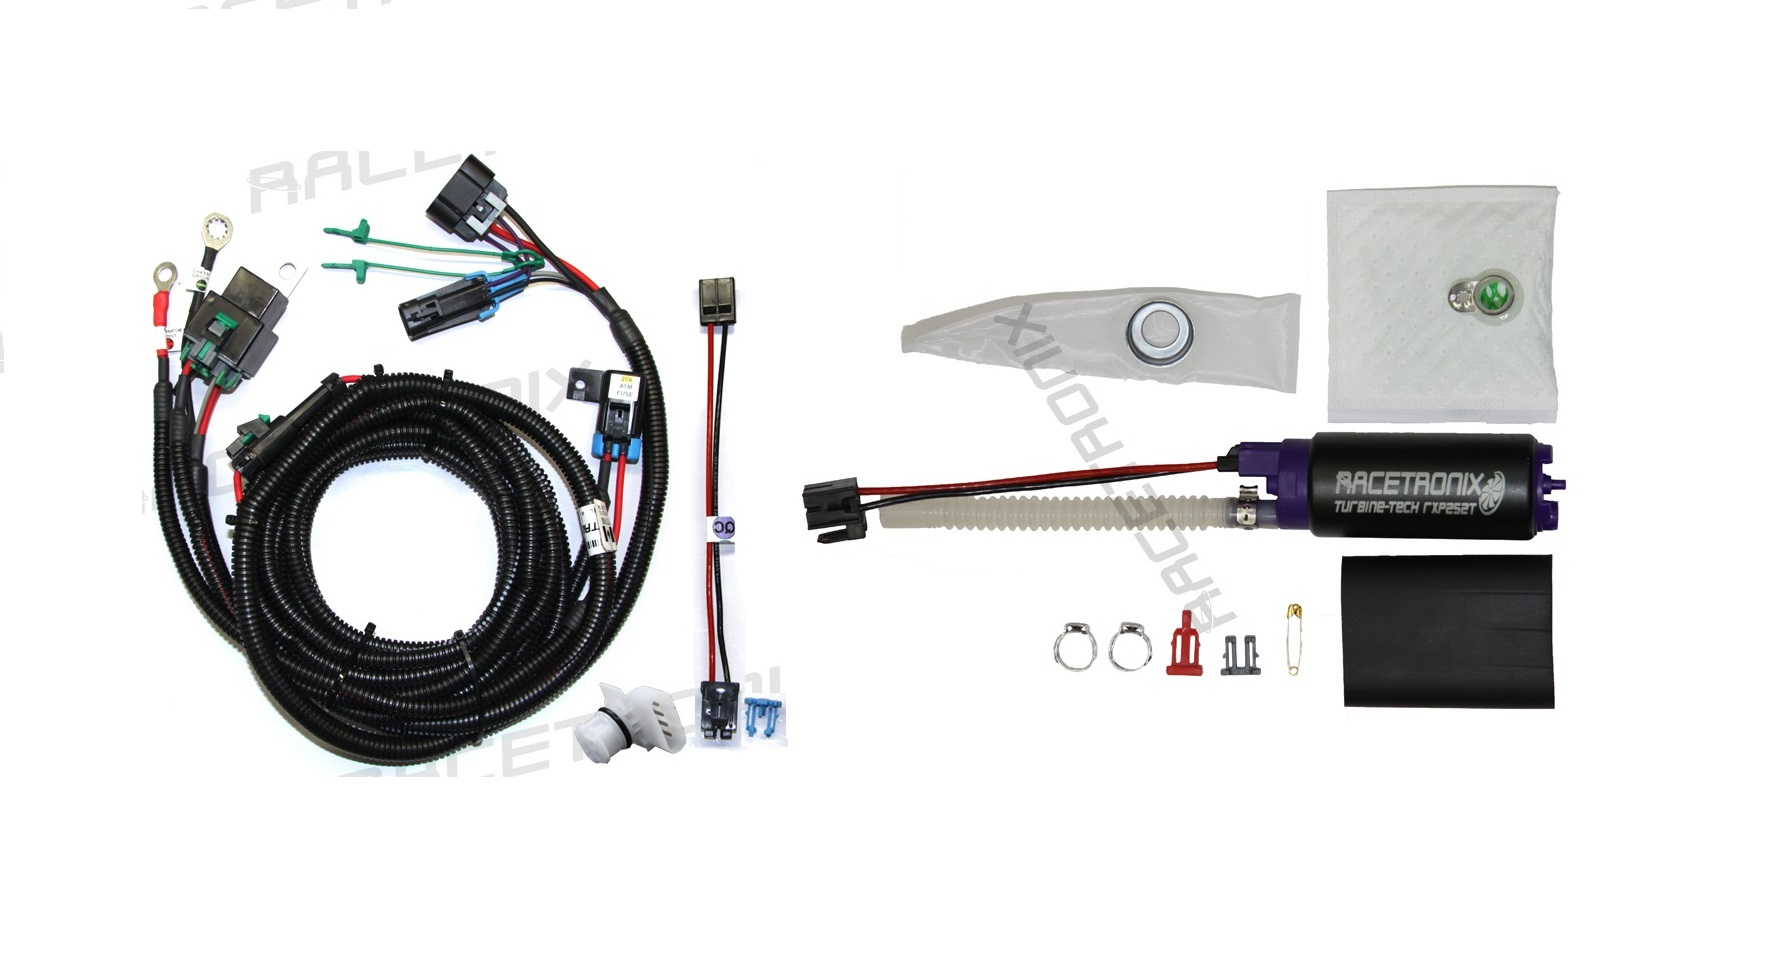 99-02 LS1 F-Body (Plastic) Racetronix Fuel System (New Version)